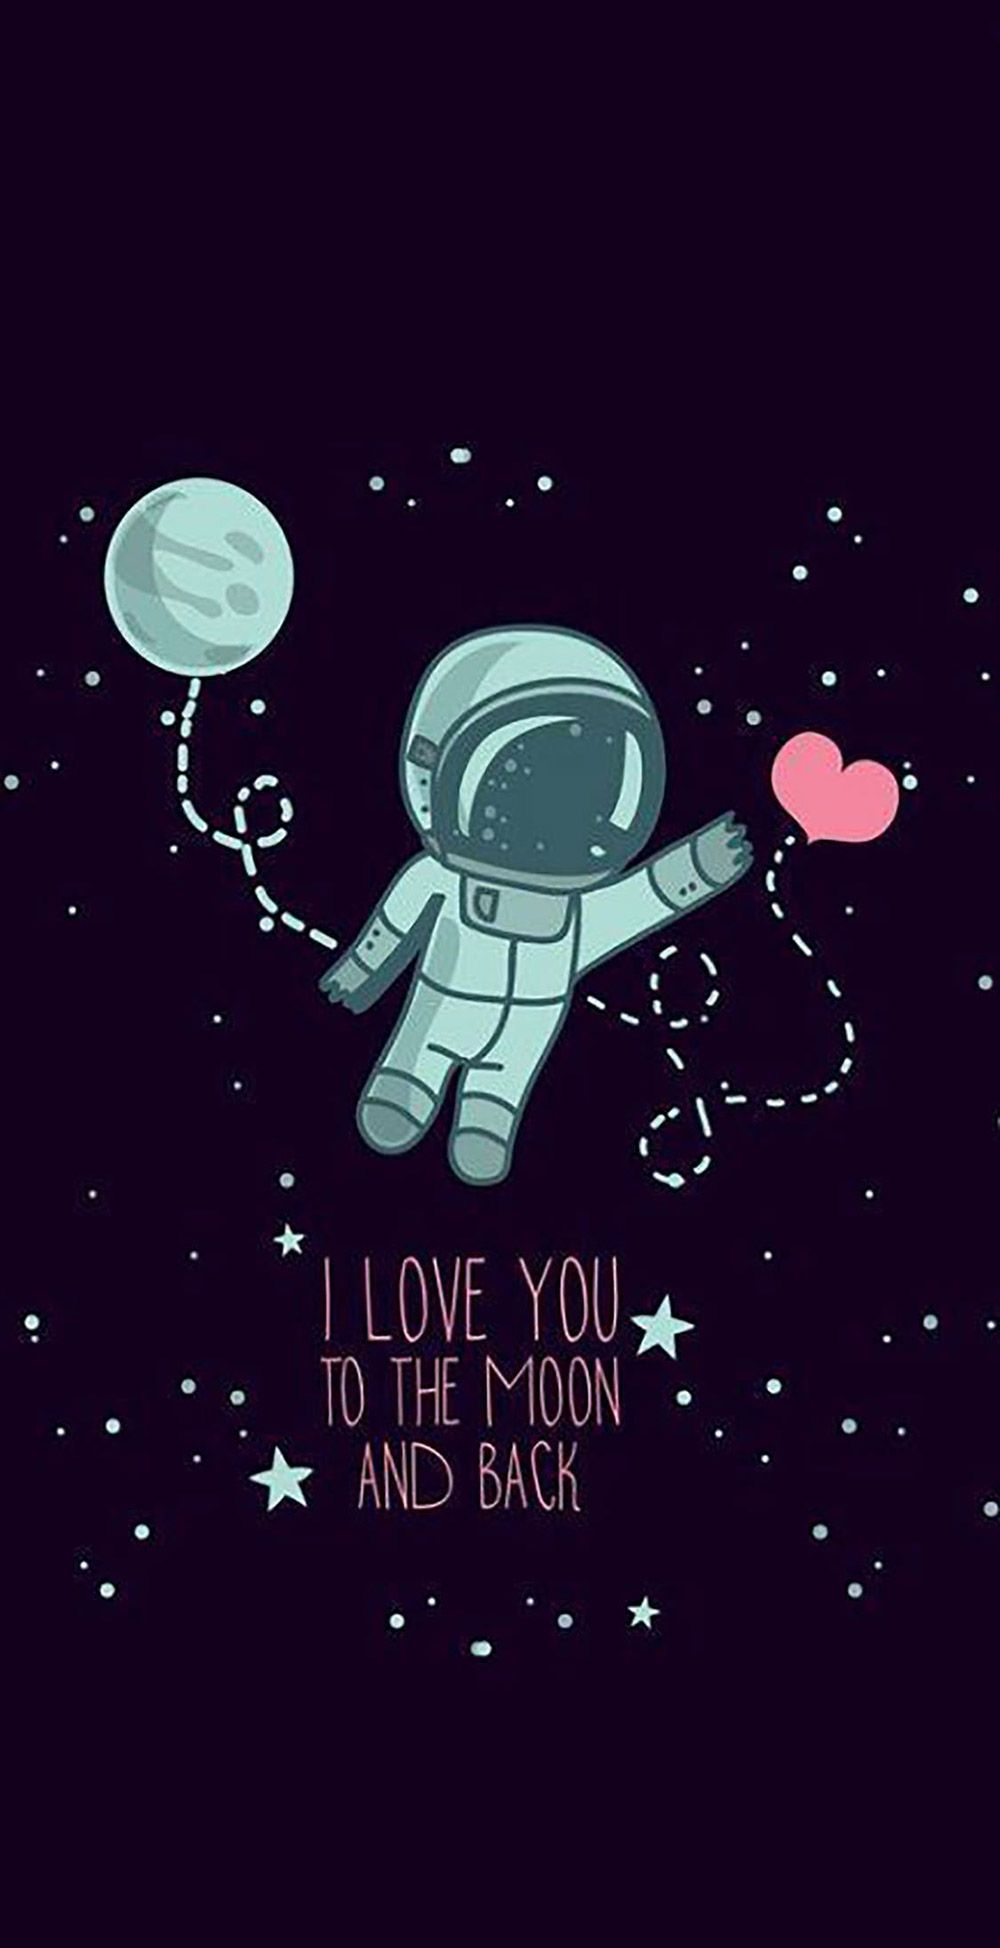 20+ Hand-picked Valentine's Day Mobile Wallpapers